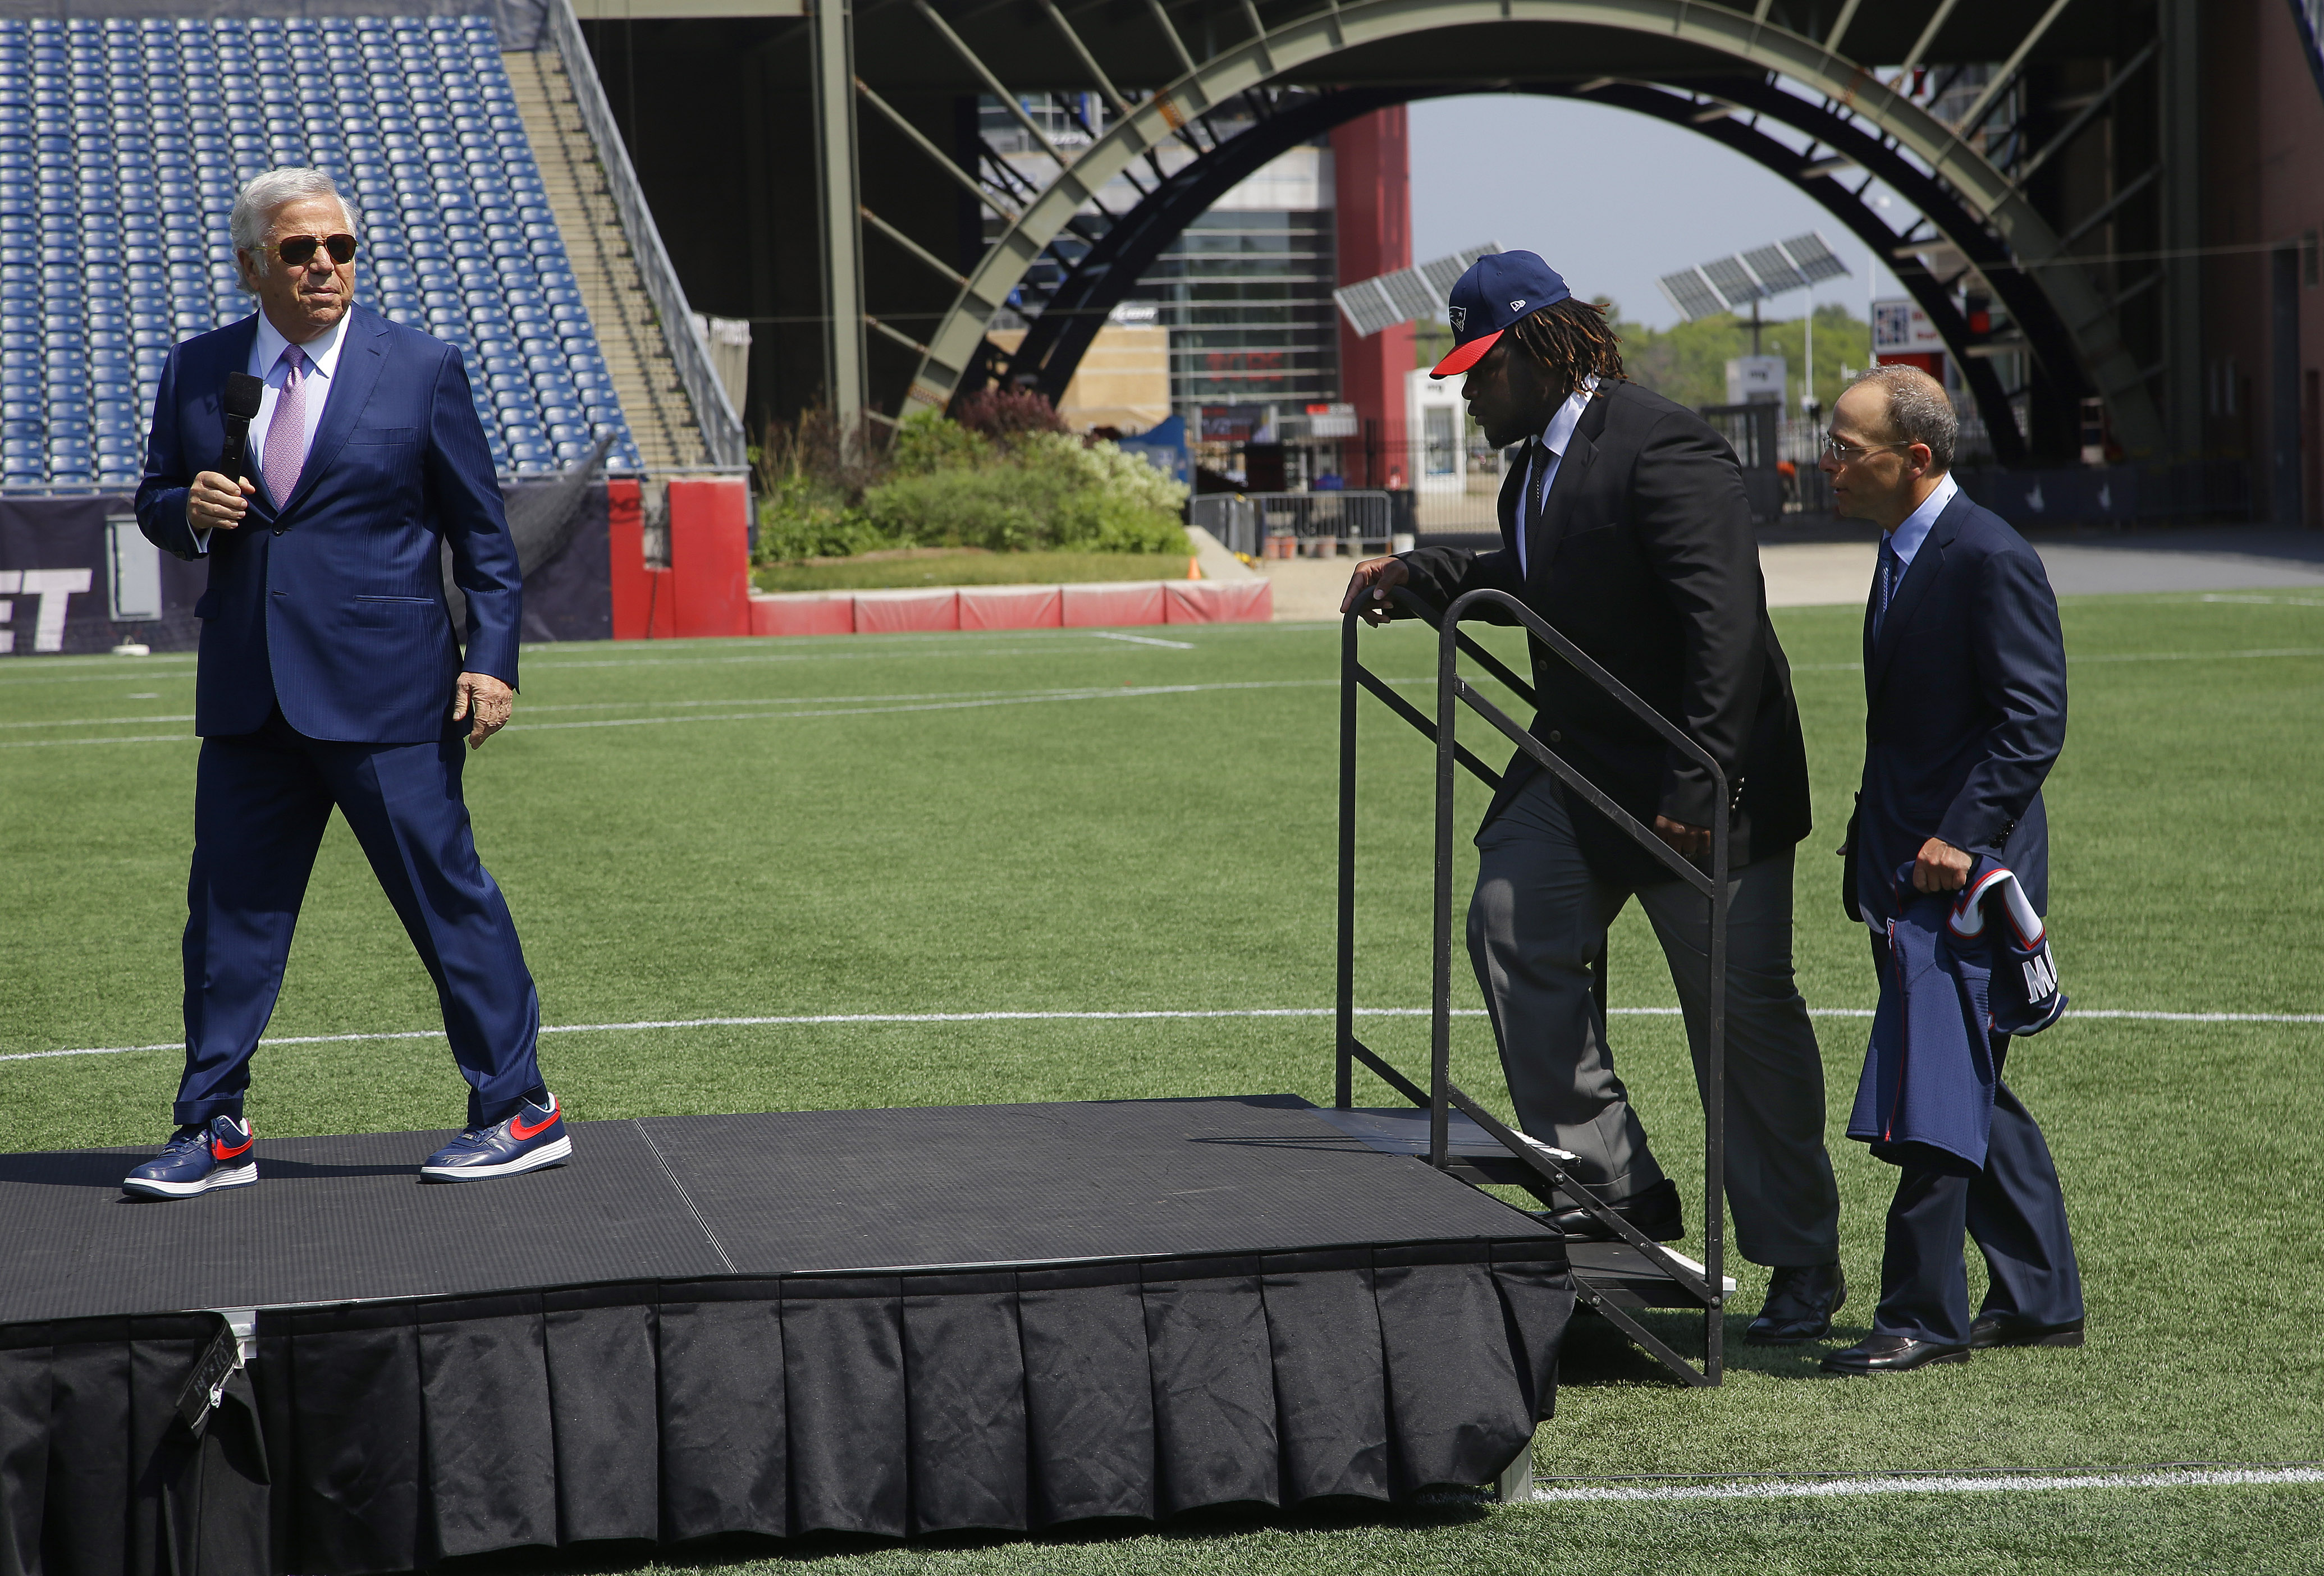 Defensive lineman Malcom Brown, second from left, the New England Patriots first round draft pick, takes the stage as Patriots owner Robert Kraft prepares to introduce Brown during a media availability at the NFL football team's facility Wednesday, May 27